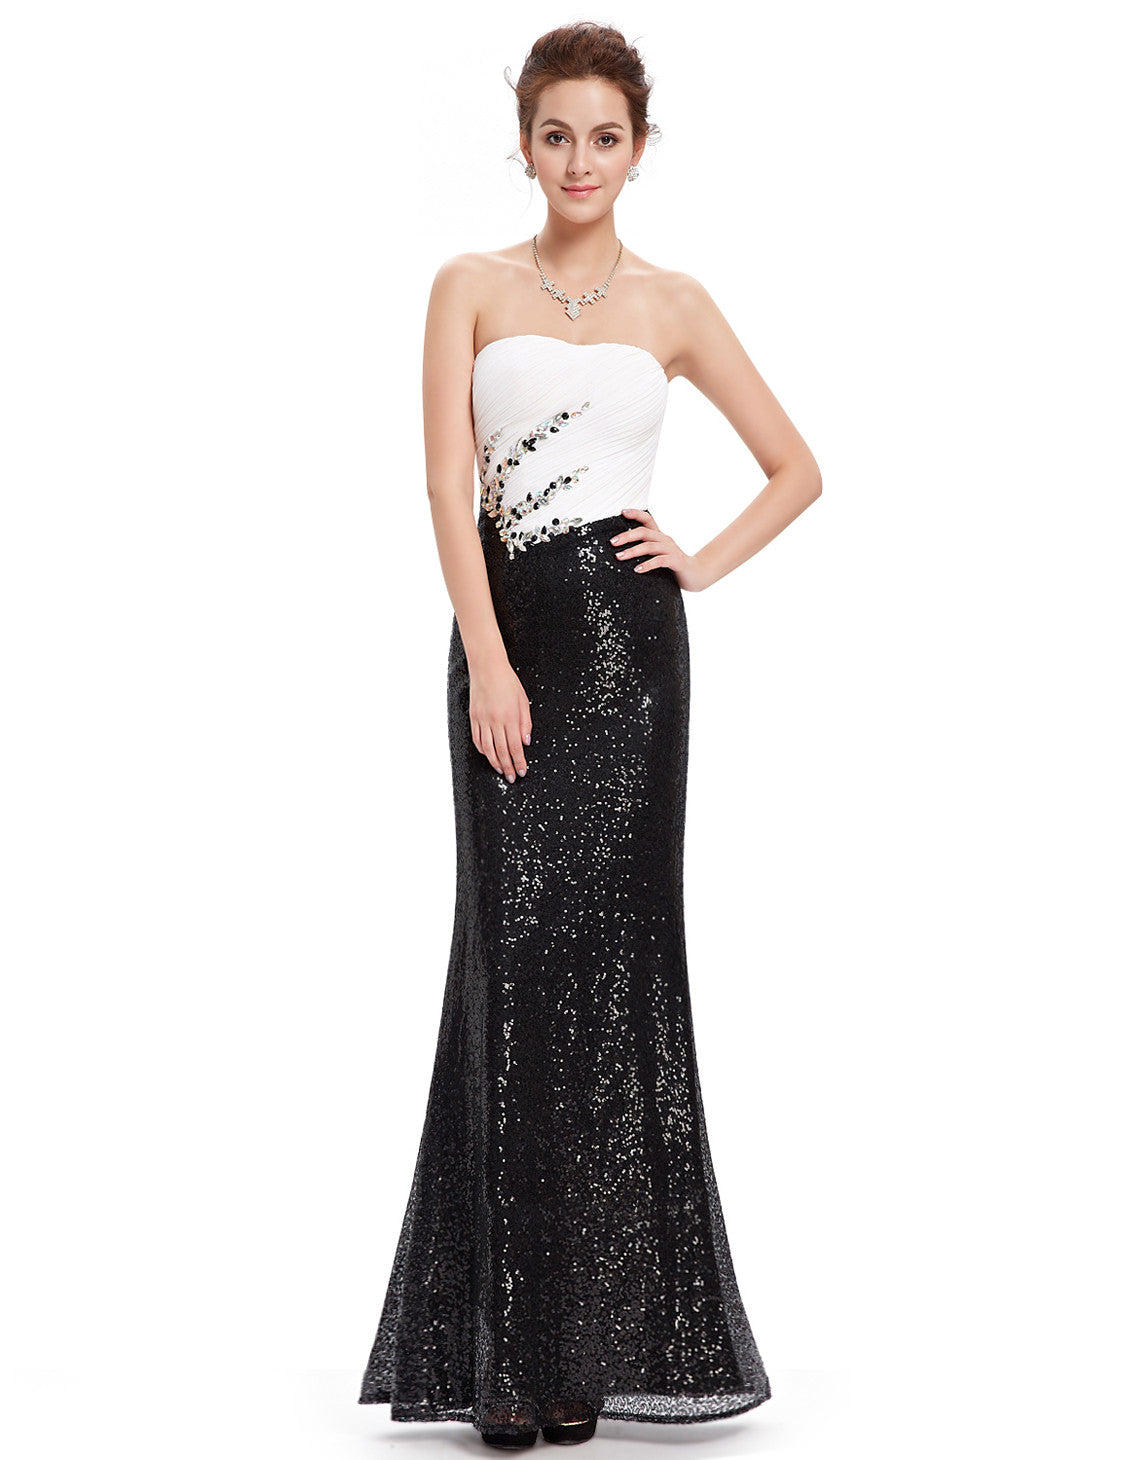 Obeige Charming Black and White Strapless Long Evening Dress